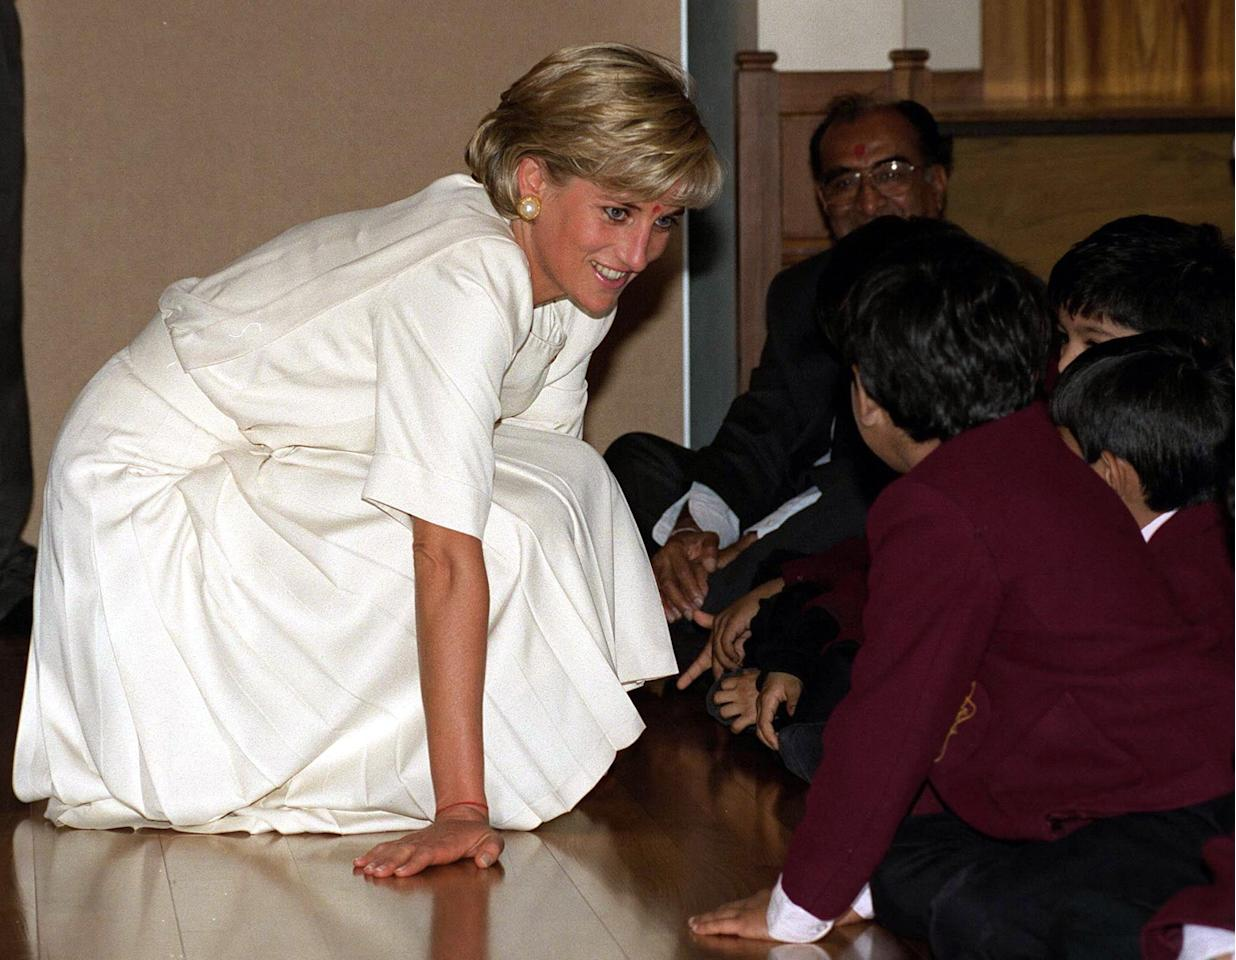 """<p>On public engagements, it had always been customary for the royal family to process through the crowds without stopping, until the queen introduced the royal walkabout on a tour of Australia and New Zealand in 1970. It was Princess Diana, however, who took things to another level as she waded into crowds with her hand outstretched, welcoming hugs and crouching down on the floor to chat with children to create a feeling of intimacy and empathy. One of the <a href=""""https://www.popsugar.co.uk/celebrity/Princess-Diana-Family-Traditions-40146520"""" target=""""_blank"""" class=""""ga-track"""" data-ga-category=""""Related"""" data-ga-label=""""https://www.popsugar.com/celebrity/Princess-Diana-Family-Traditions-40146520"""" data-ga-action=""""In-Line Links"""">many traditions</a> that William and Harry have inherited from their mother is this trait, often revealing little tidbits of information about their family or personal lives along the way.</p>     <p>Related: <a href=""""https://www.popsugar.com/celebrity/British-Royal-Family-Breaking-Protocol-43690330?utm_medium=partner_feed&utm_source=yahoo_publisher&utm_campaign=related%20link"""">10 Times the British Royal Family Showed Us That Some Rules Are Meant to Be Broken</a></p>"""